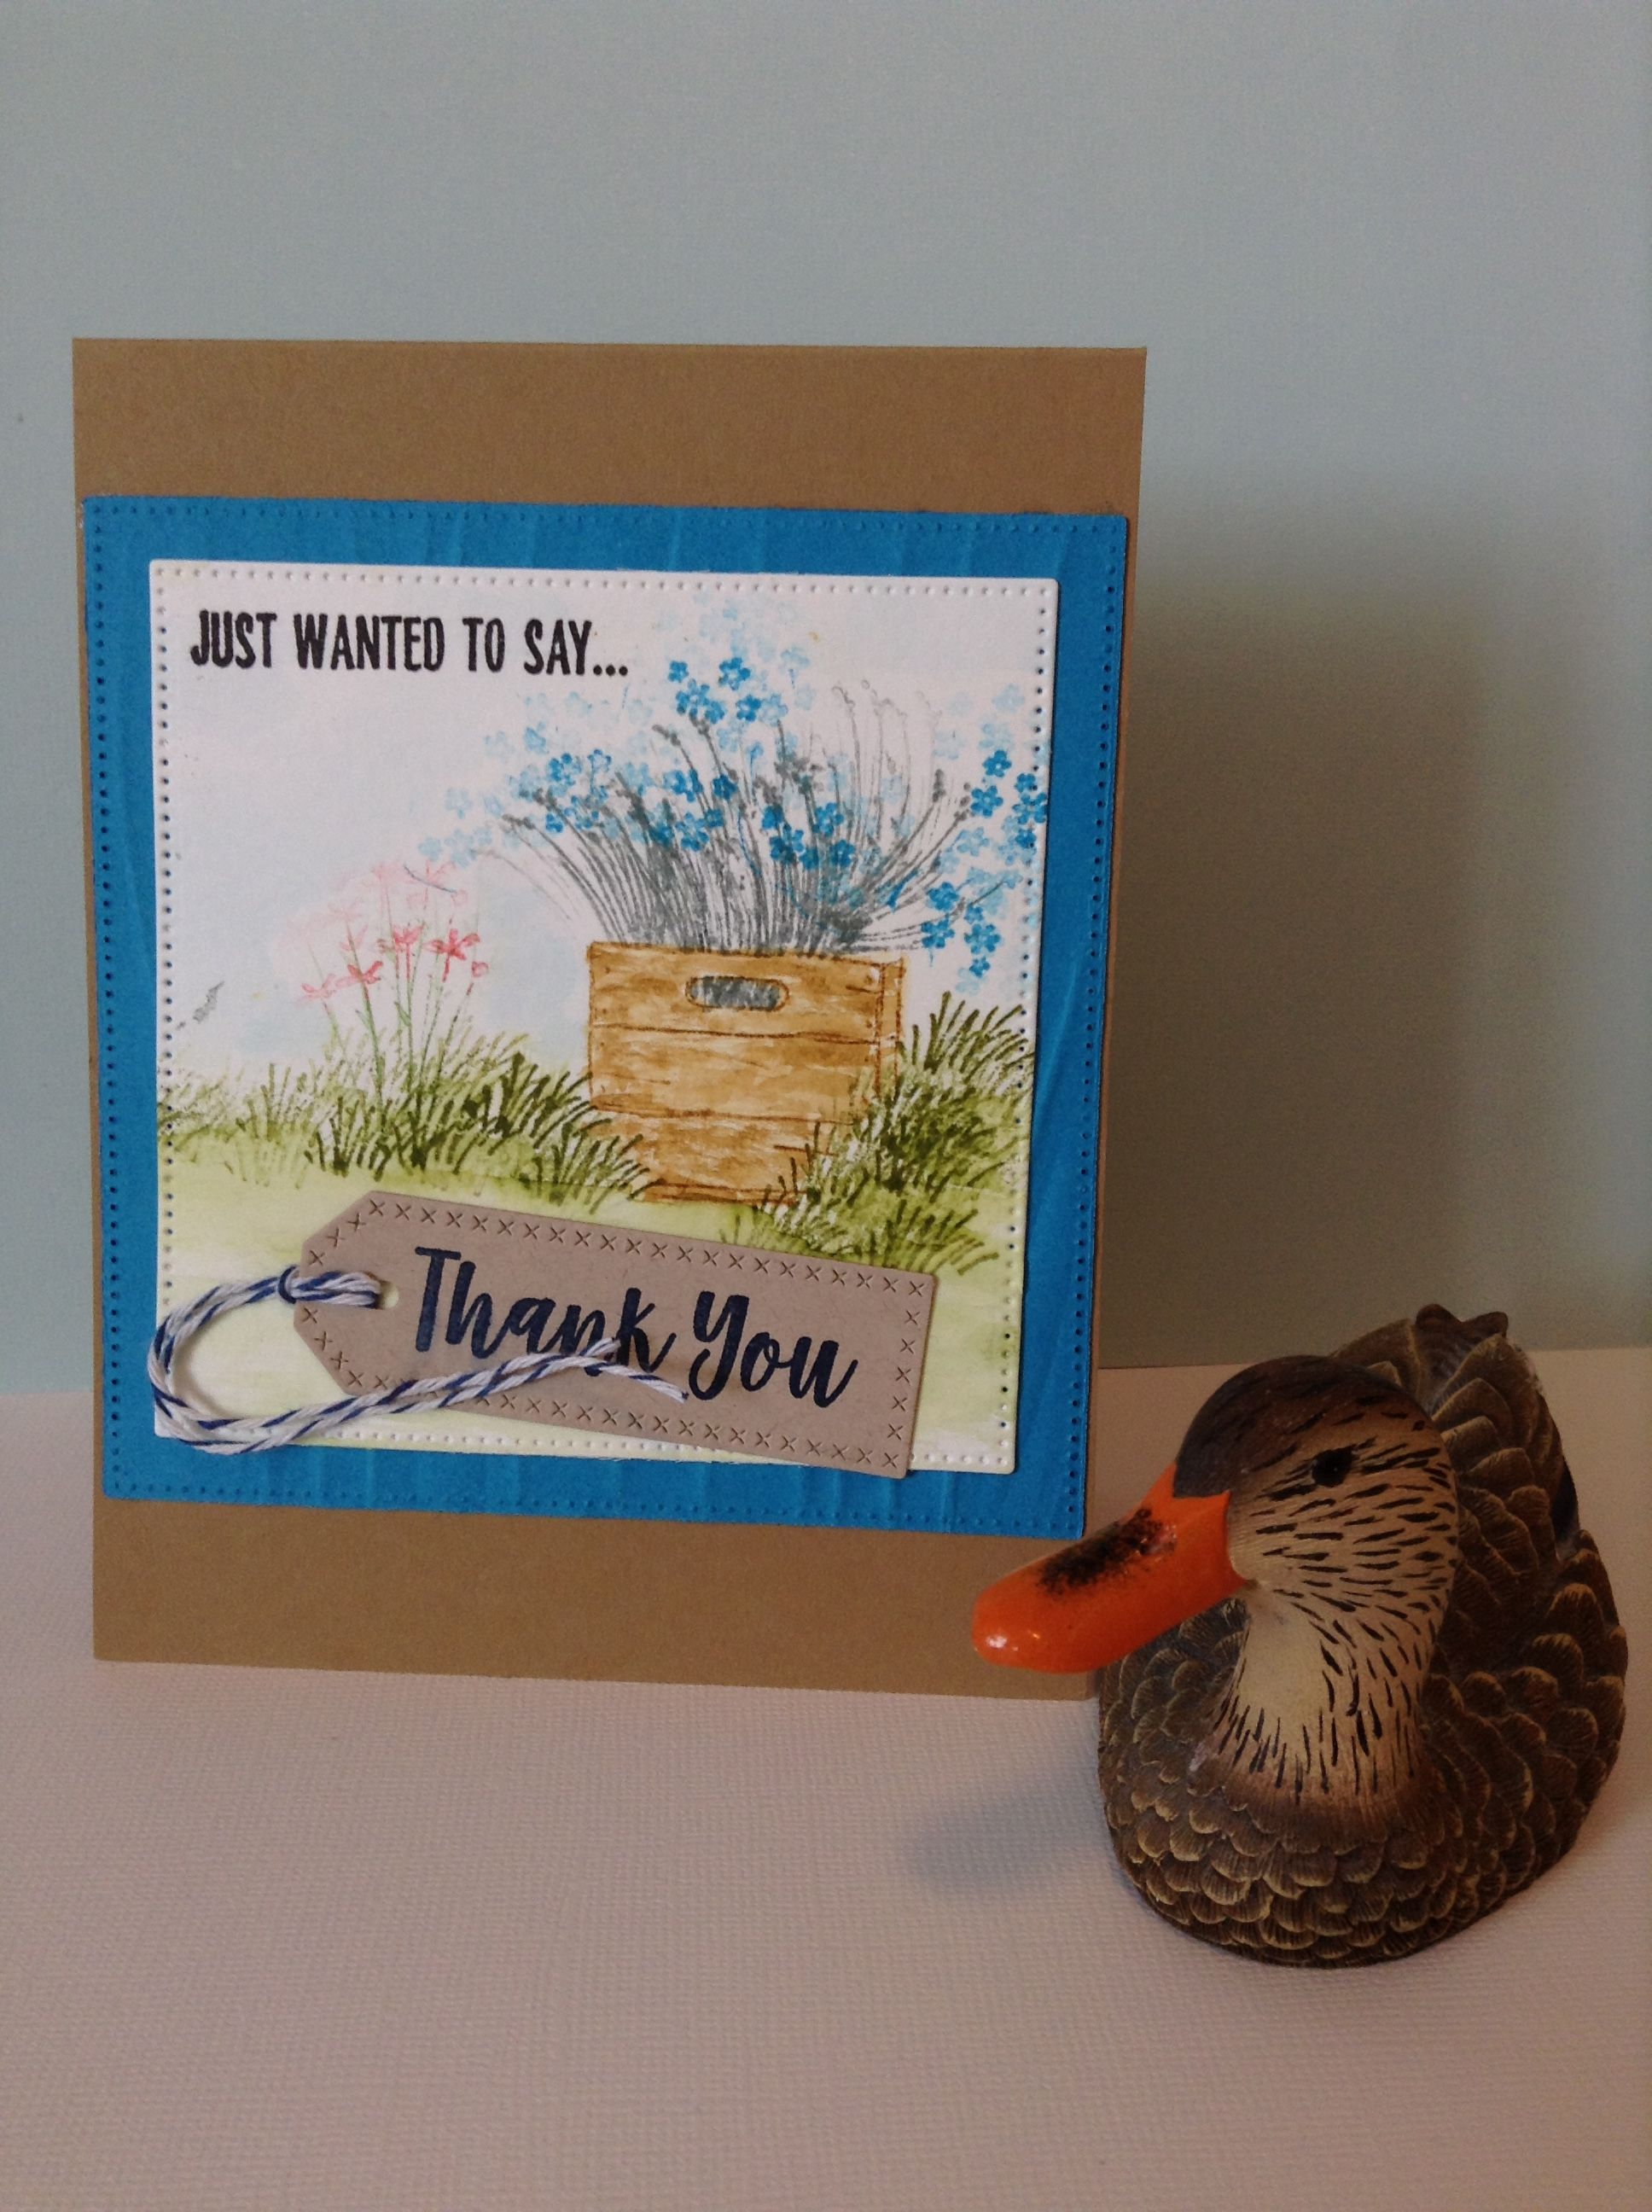 Thank You card by Melodie Art Impressions image stamps, My Favorite a Things sentiment.